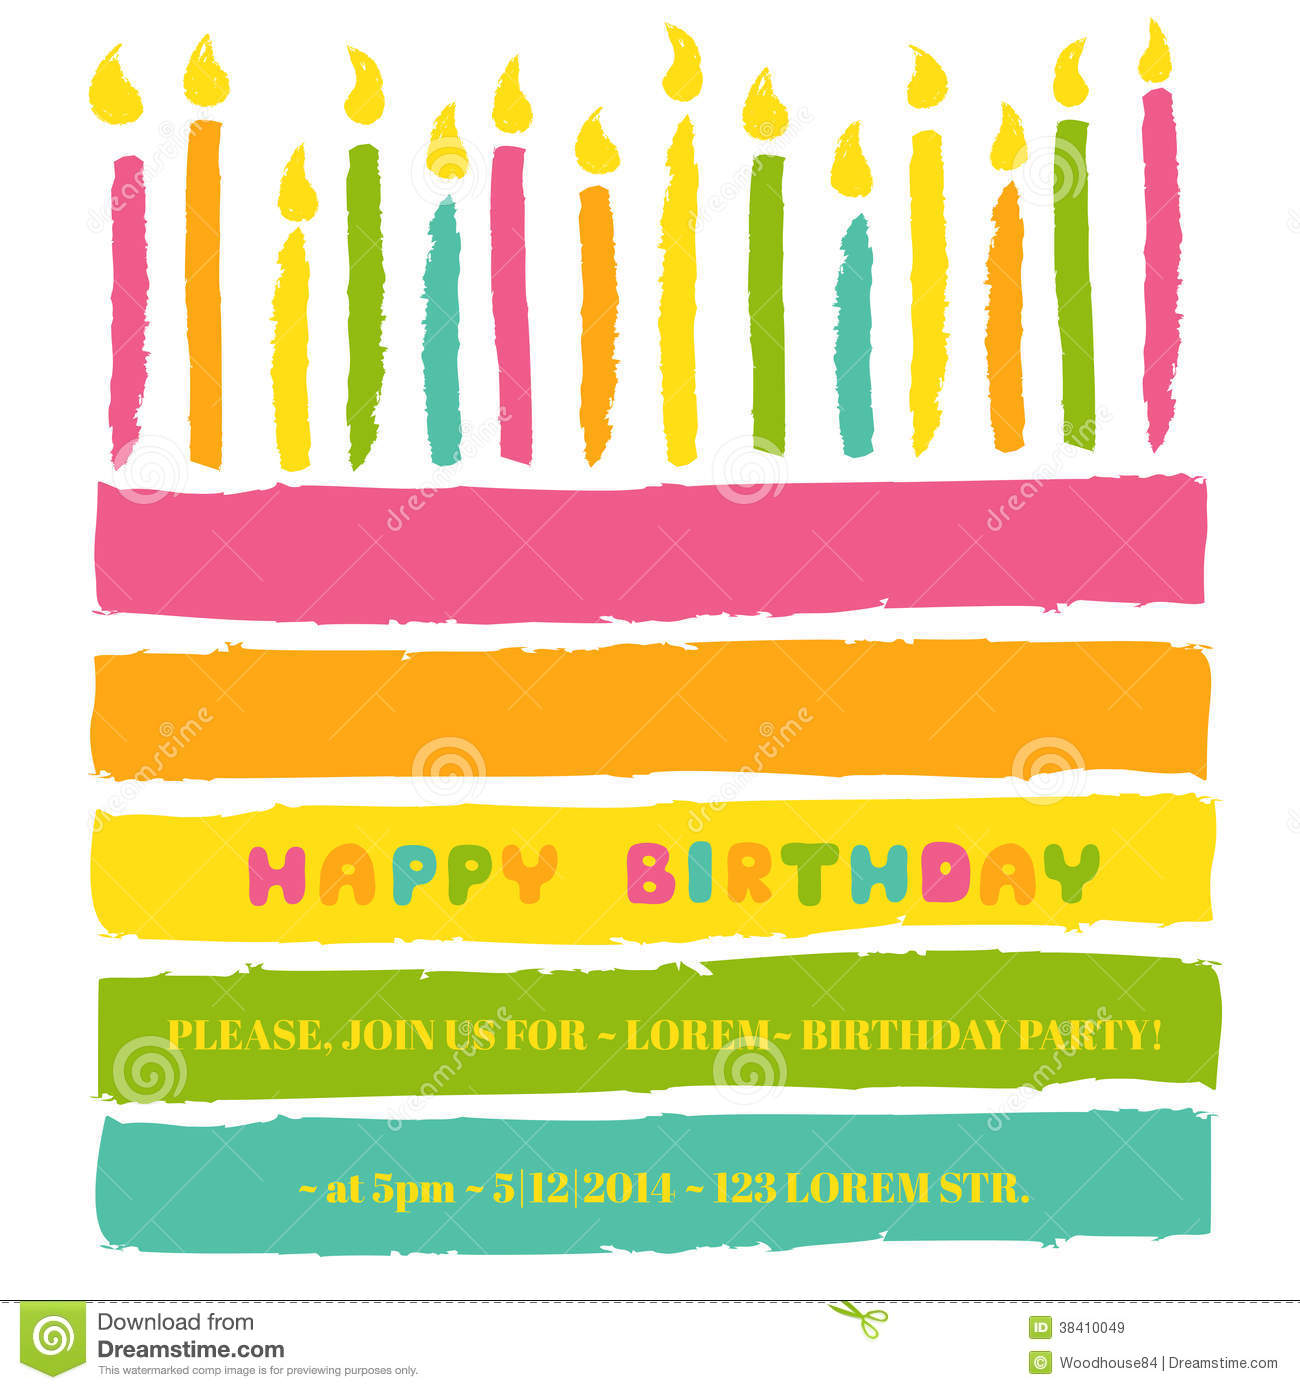 happy birthday party invitation ; happy-birthday-party-invitation-card-38410049